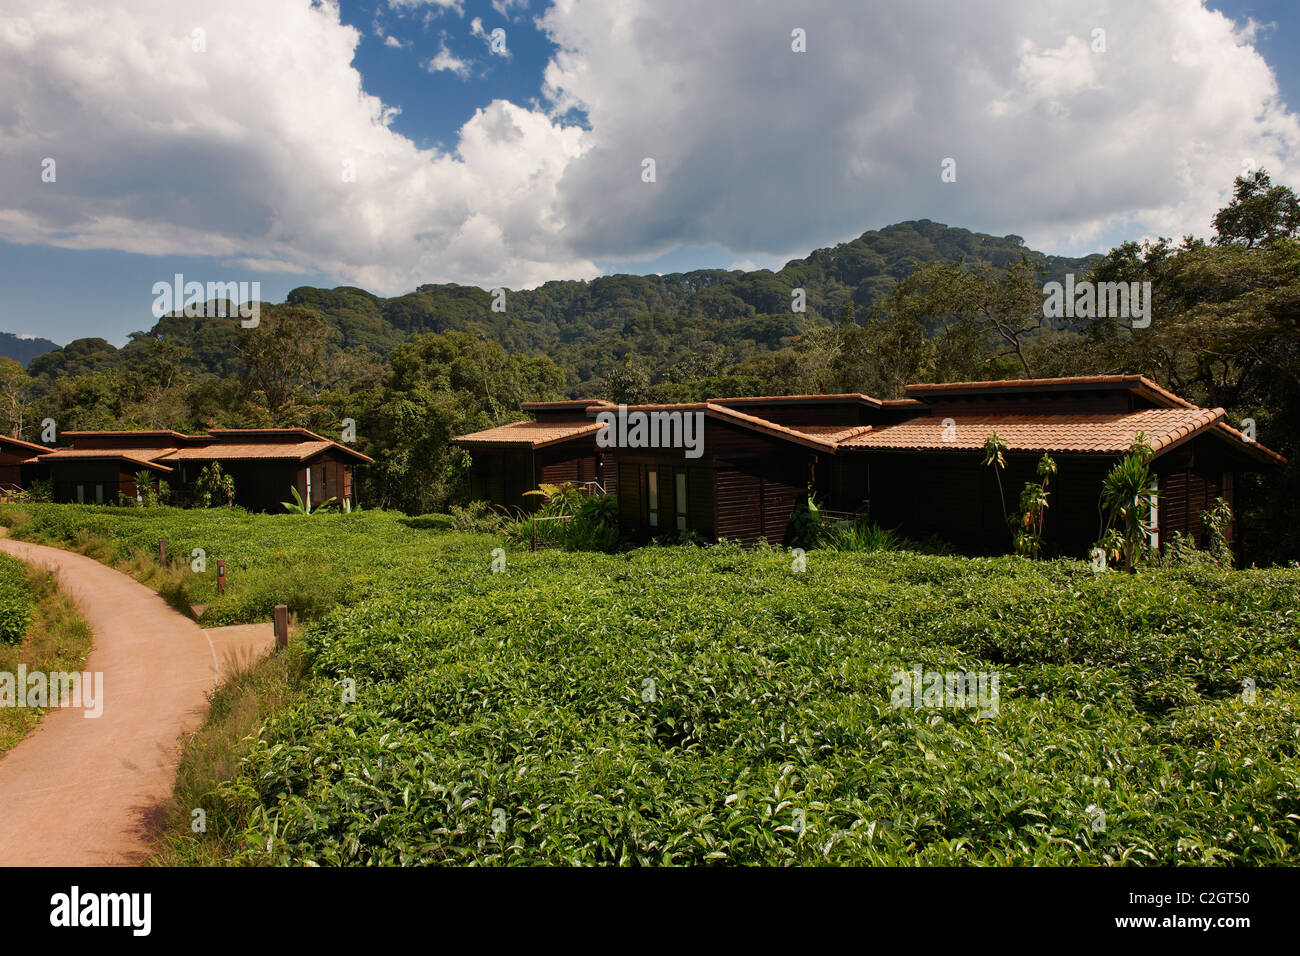 guest houses of five star luxury Nyungwe Forest Lodge between tea plantation, Parc National de Nyungwe, Rwanda, - Stock Image